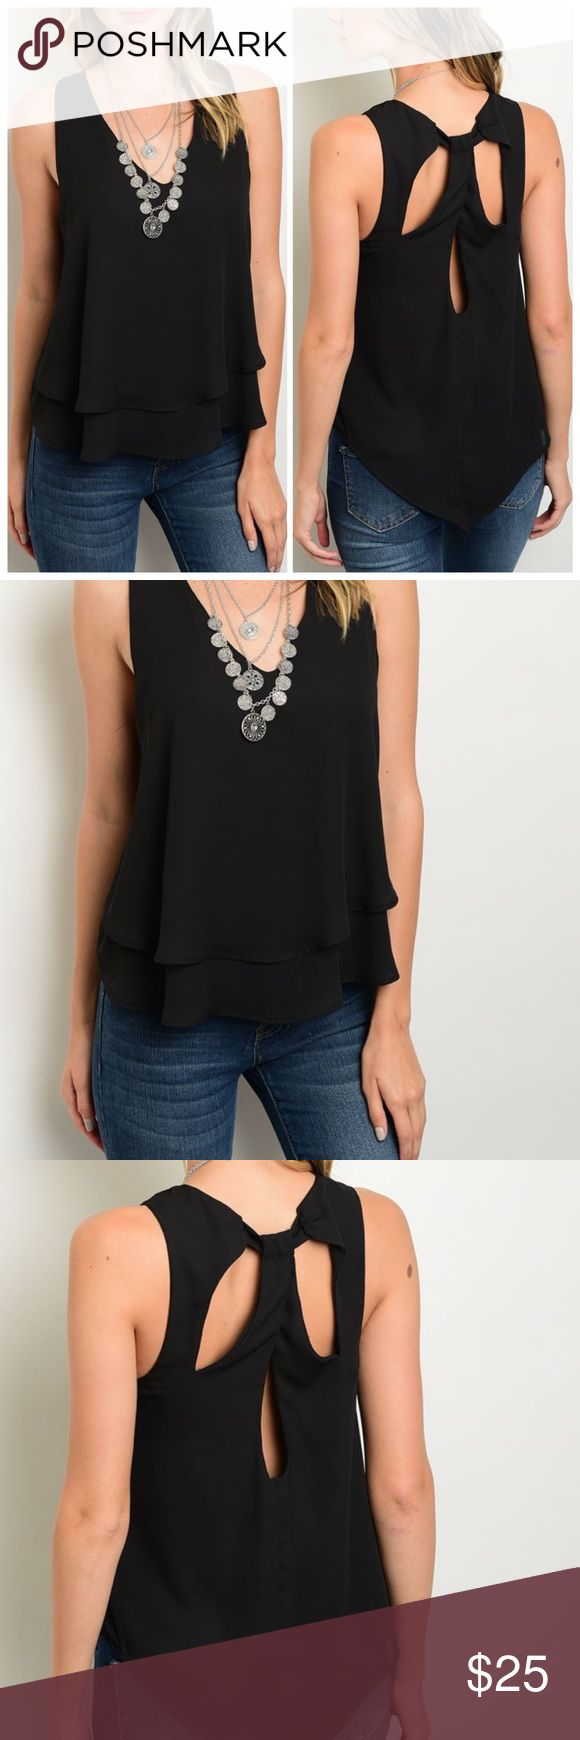 """🚨SALE🚨Black sexy back blouse Classic black sleeveless blouse. Lined, not see through. Sexy back. Made in USA. 100% polyester. Pair with anything!! Length is 26"""". Small: bust 36"""". Relaxed and Flowey fit. New without tags. CupofTea Tops Blouses"""